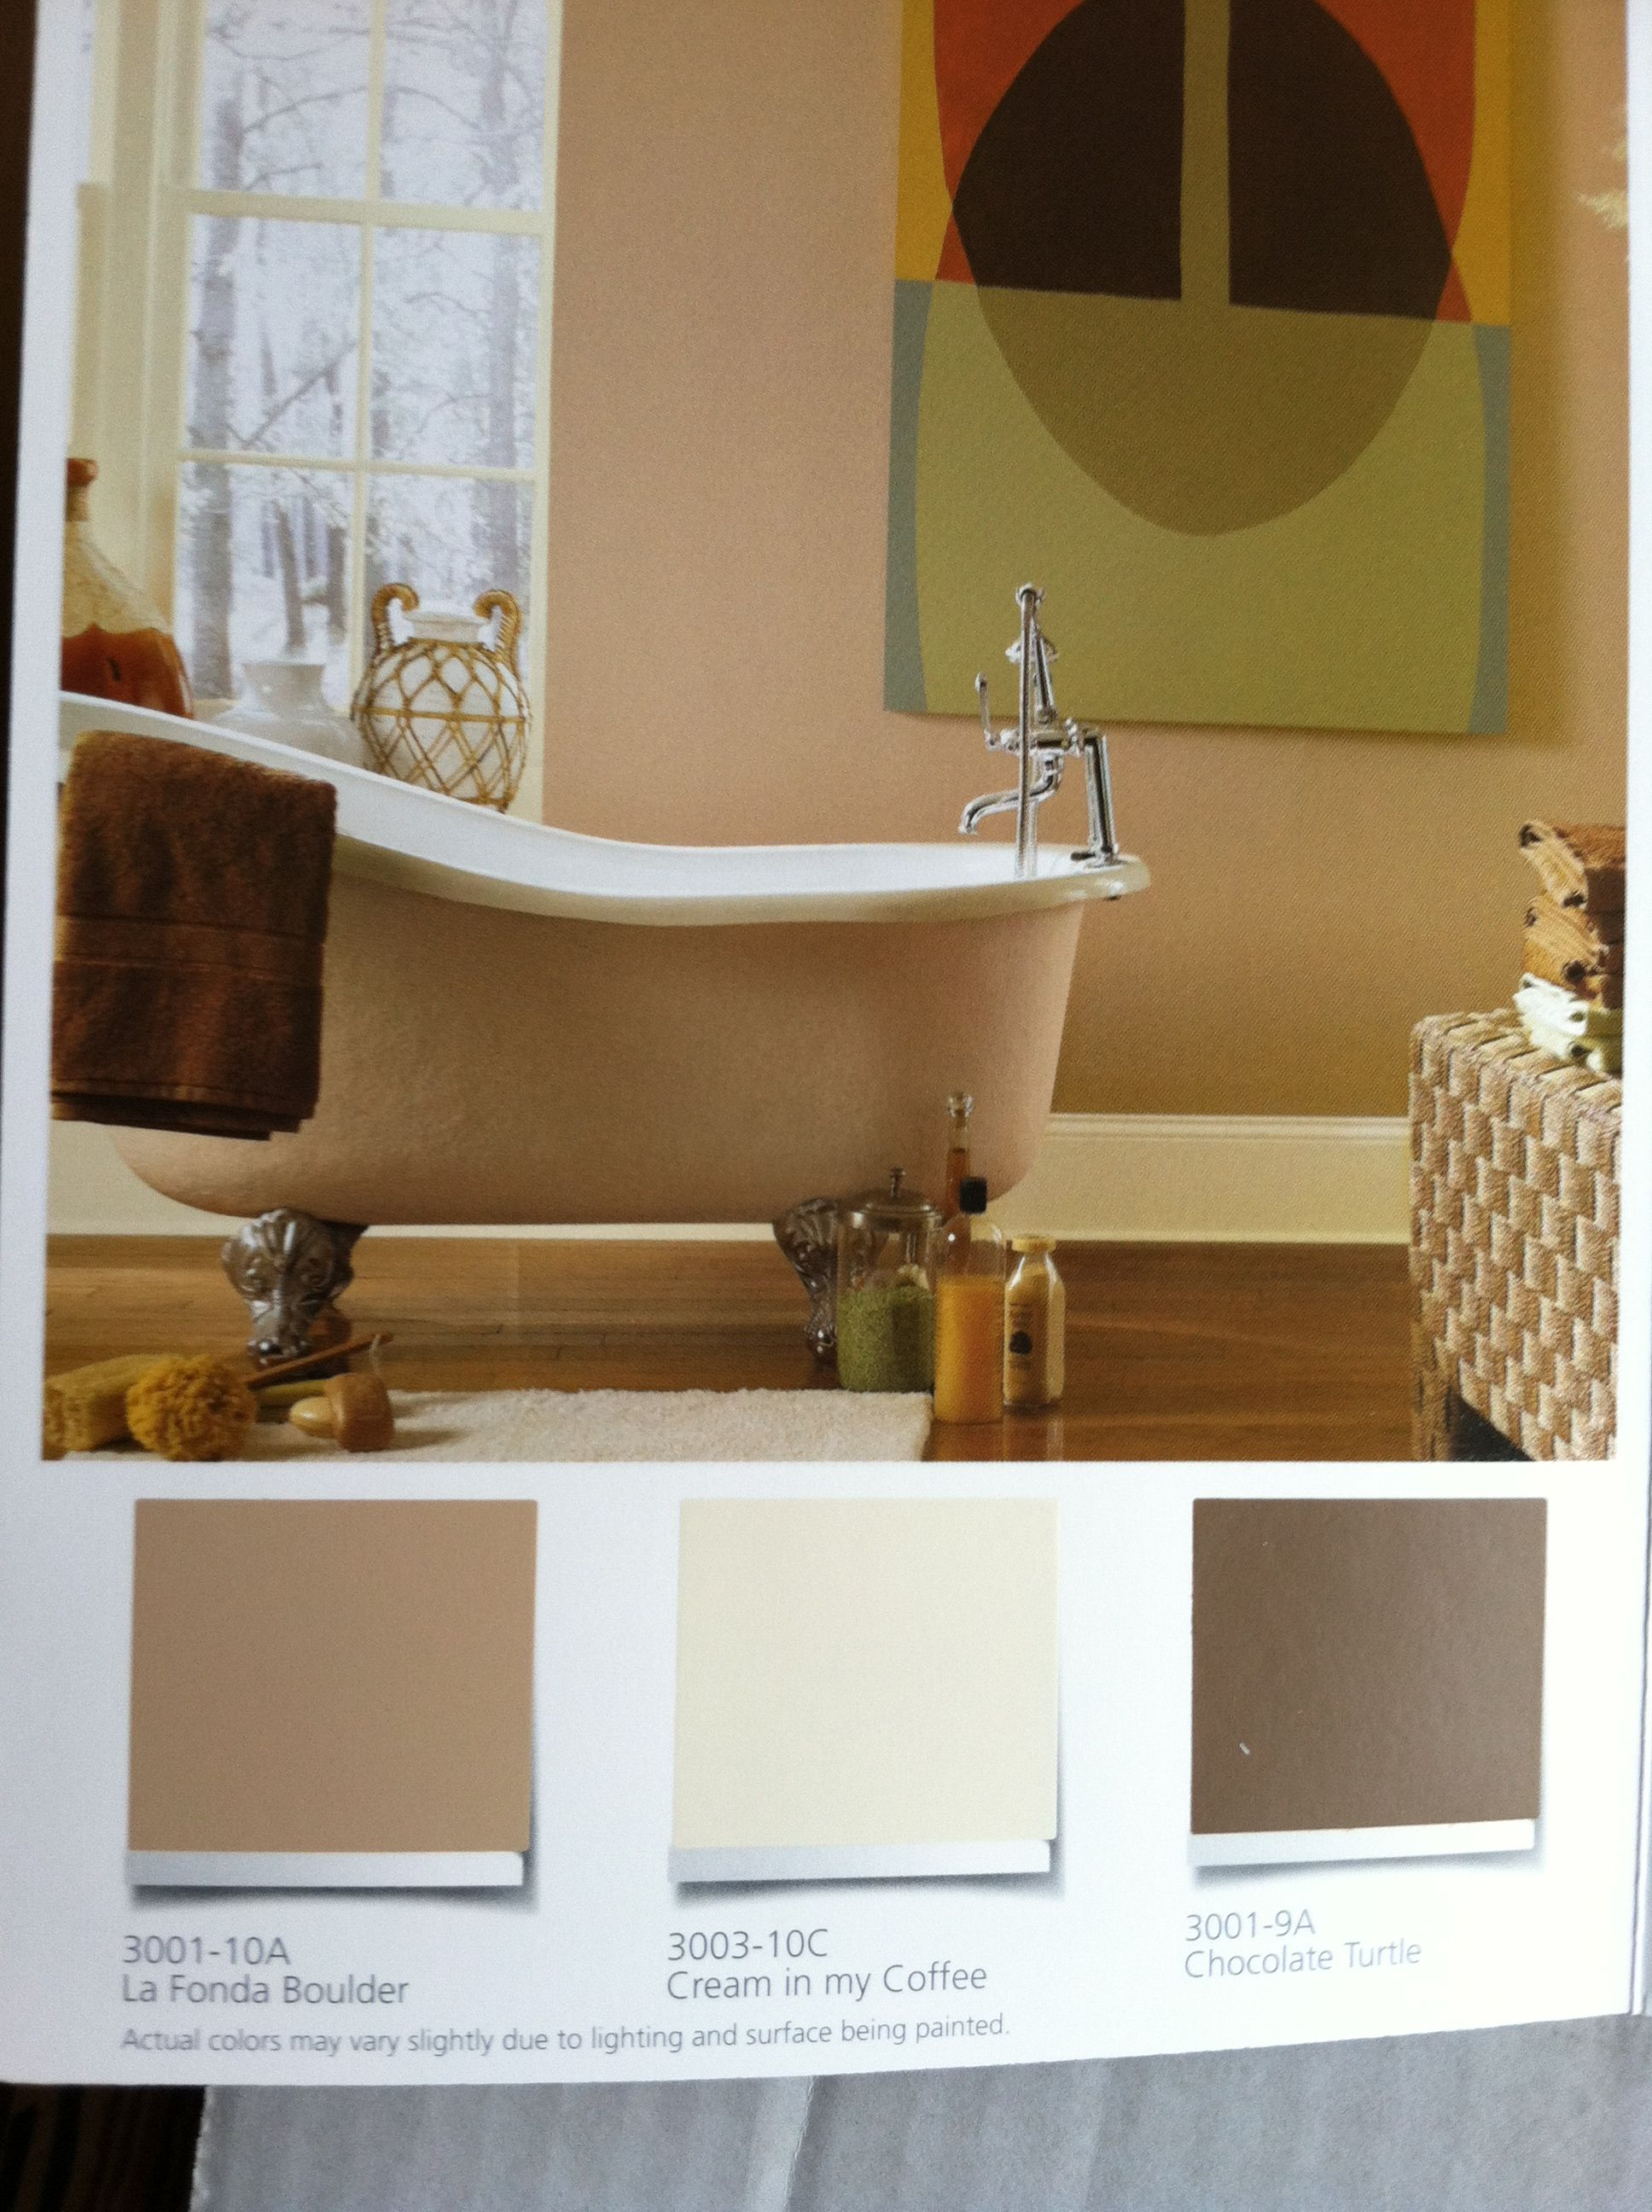 valspar paint in la fonda boulder cream in my coffee and on lowes paint colors interior id=16187